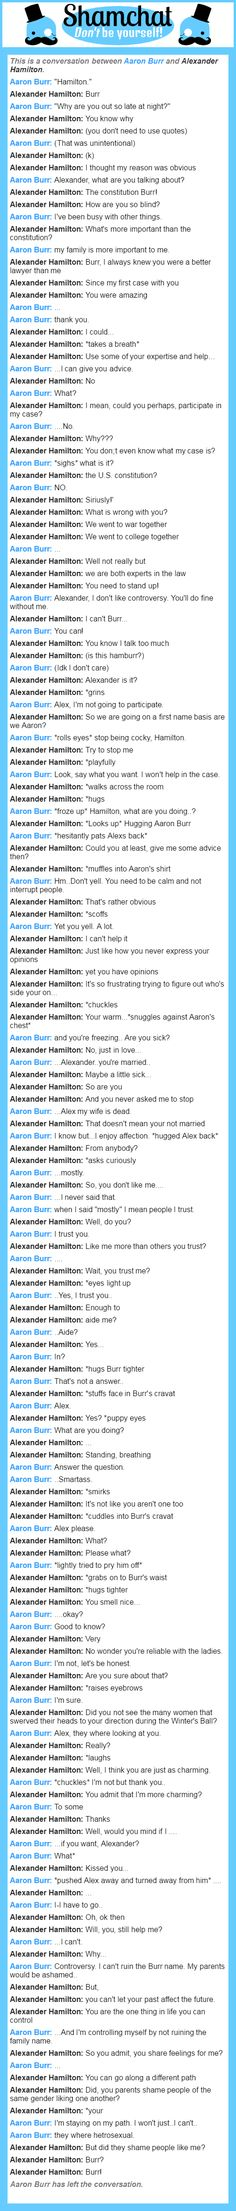 A conversation between Alexander Hamilton and Aaron Burr  My roleplays as A. Ham